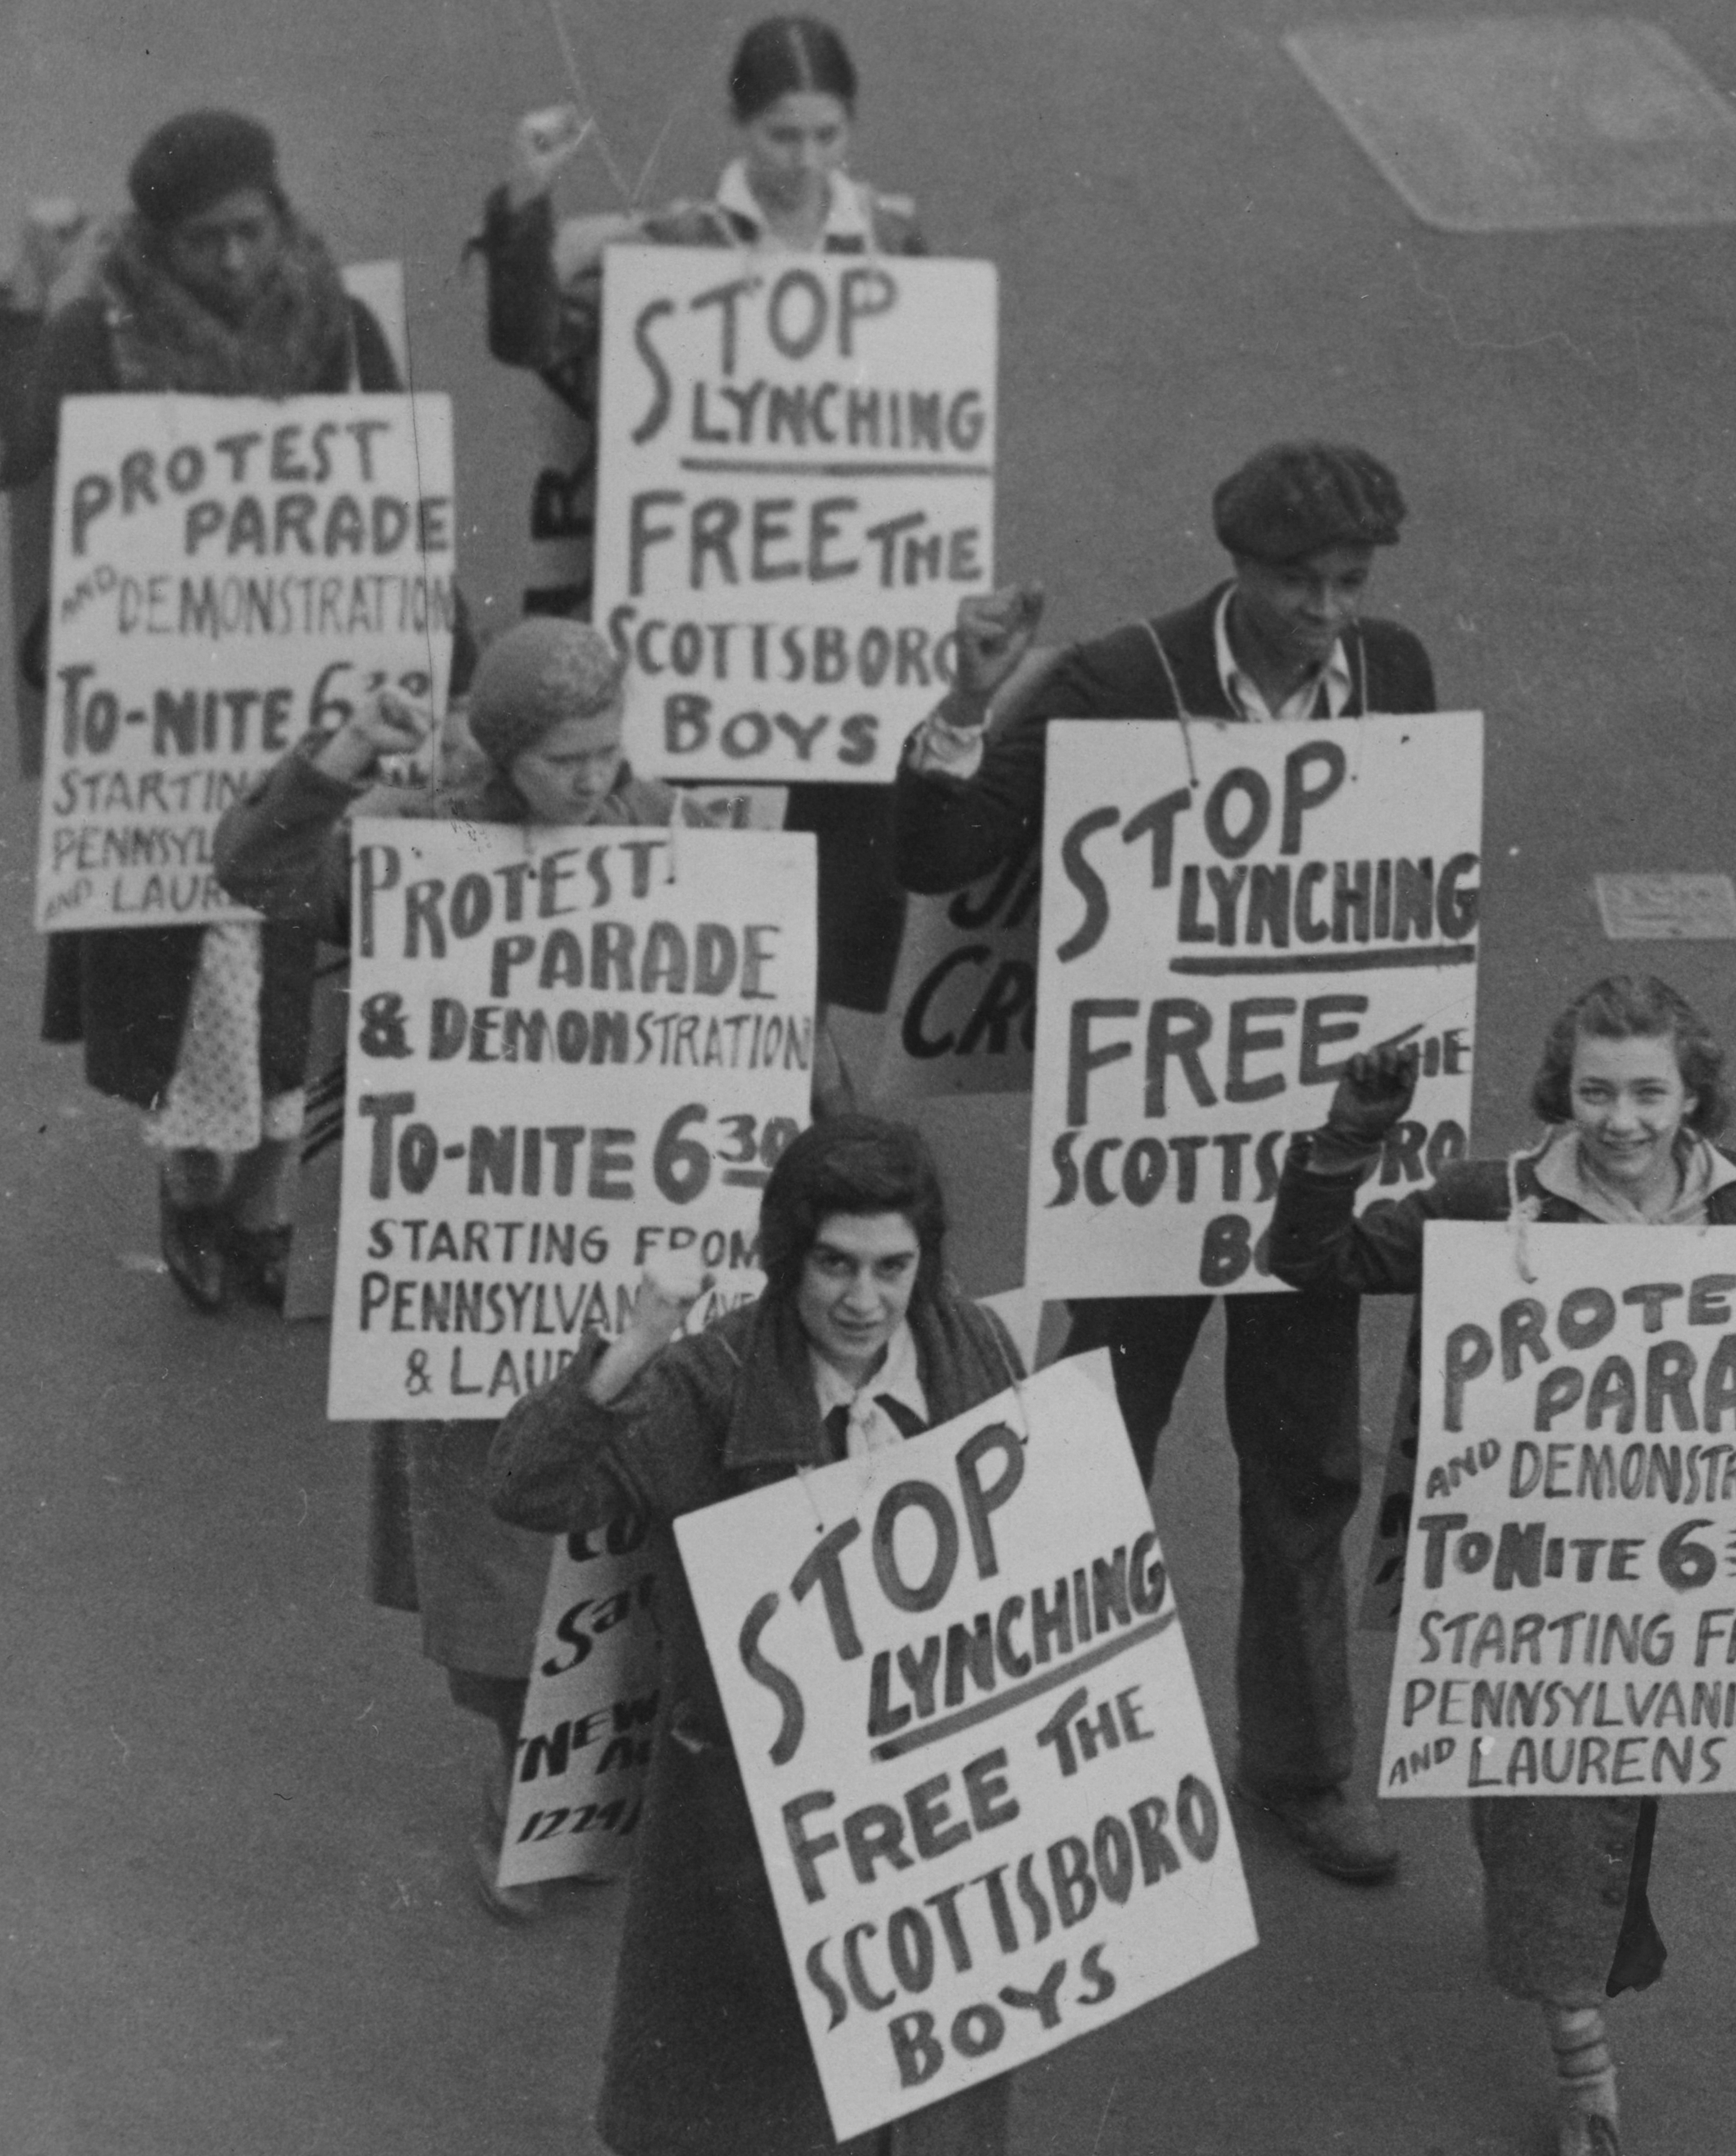 Members of the Communist Party of the United States' preparing for a march to protest the conviction of the Scottsboro boys, 1933. (Credit: Afro American Newspapers/Gado/Getty Images)